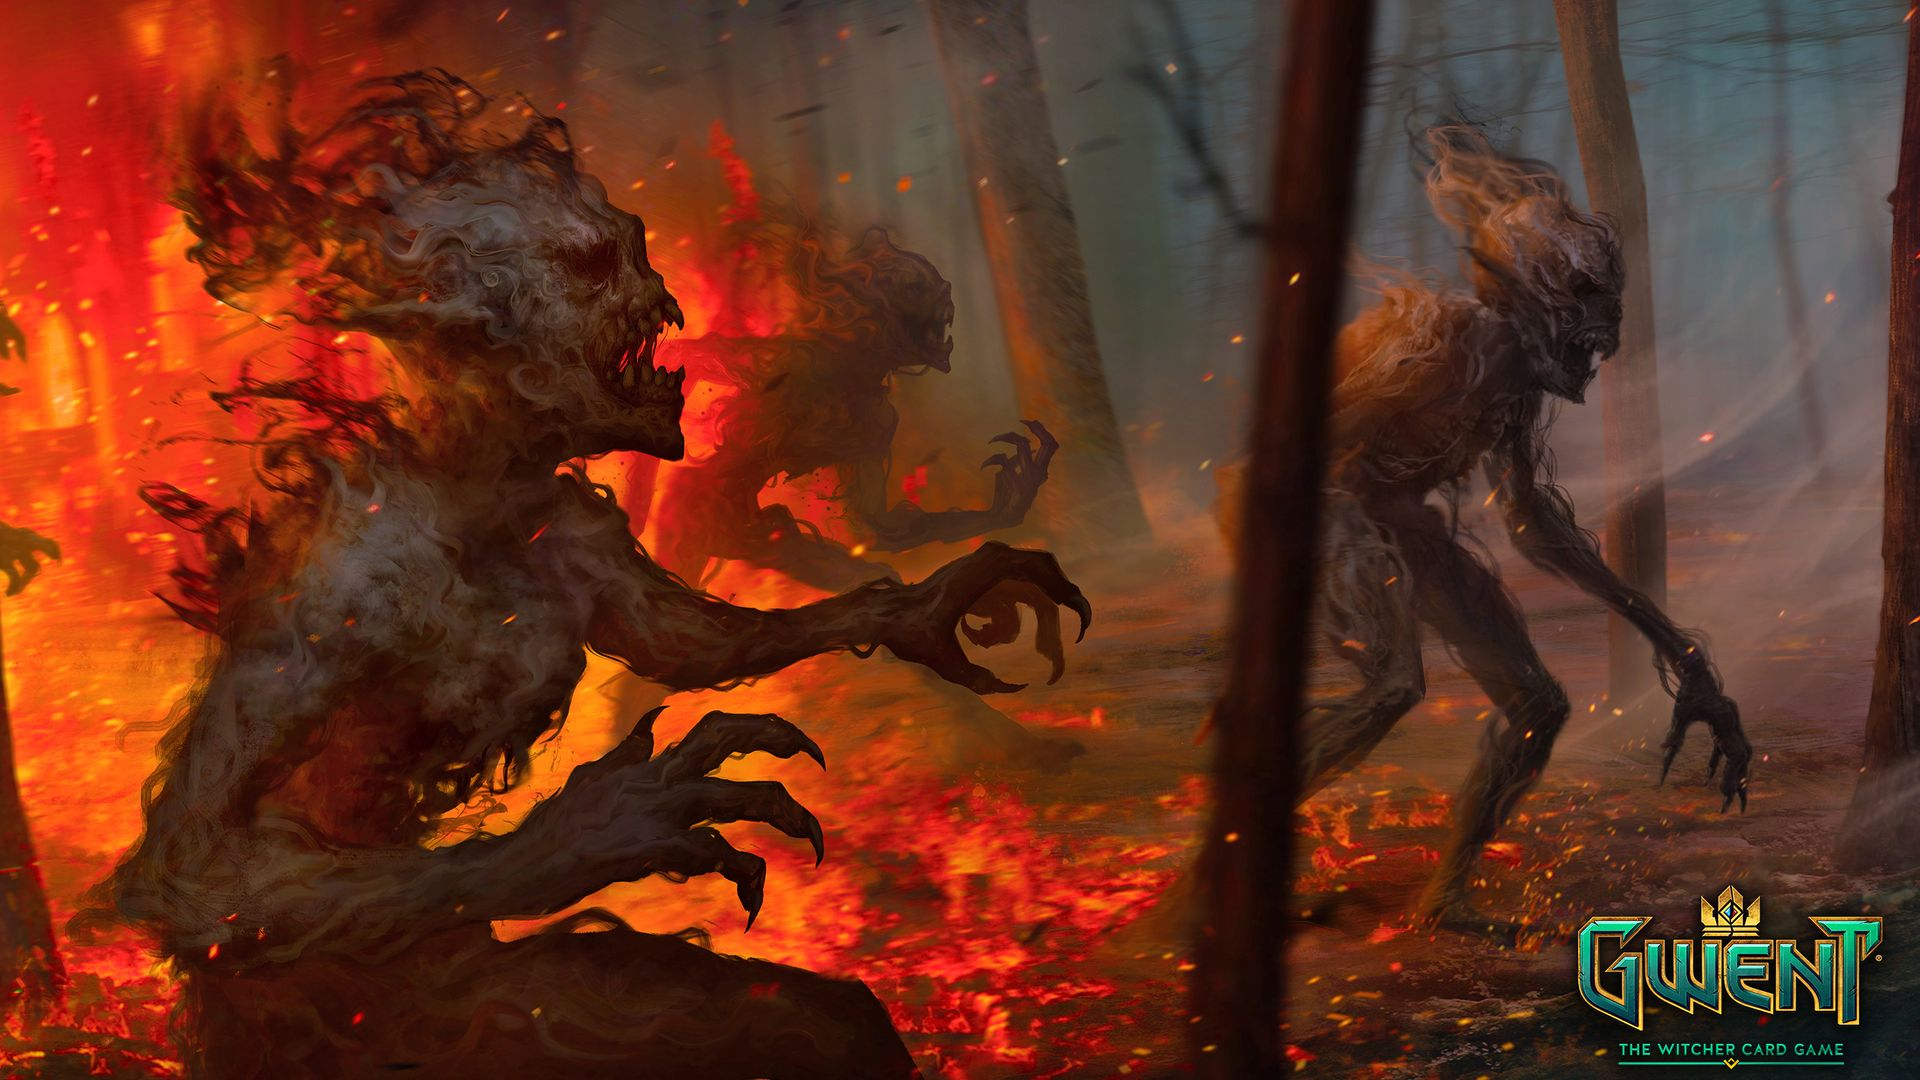 Gwent The Witcher Card Game Burning Monsters In The Forest Wallpaper For Thread Gwint The Witcher Card Game Witcher Art The Witcher Witcher Monsters